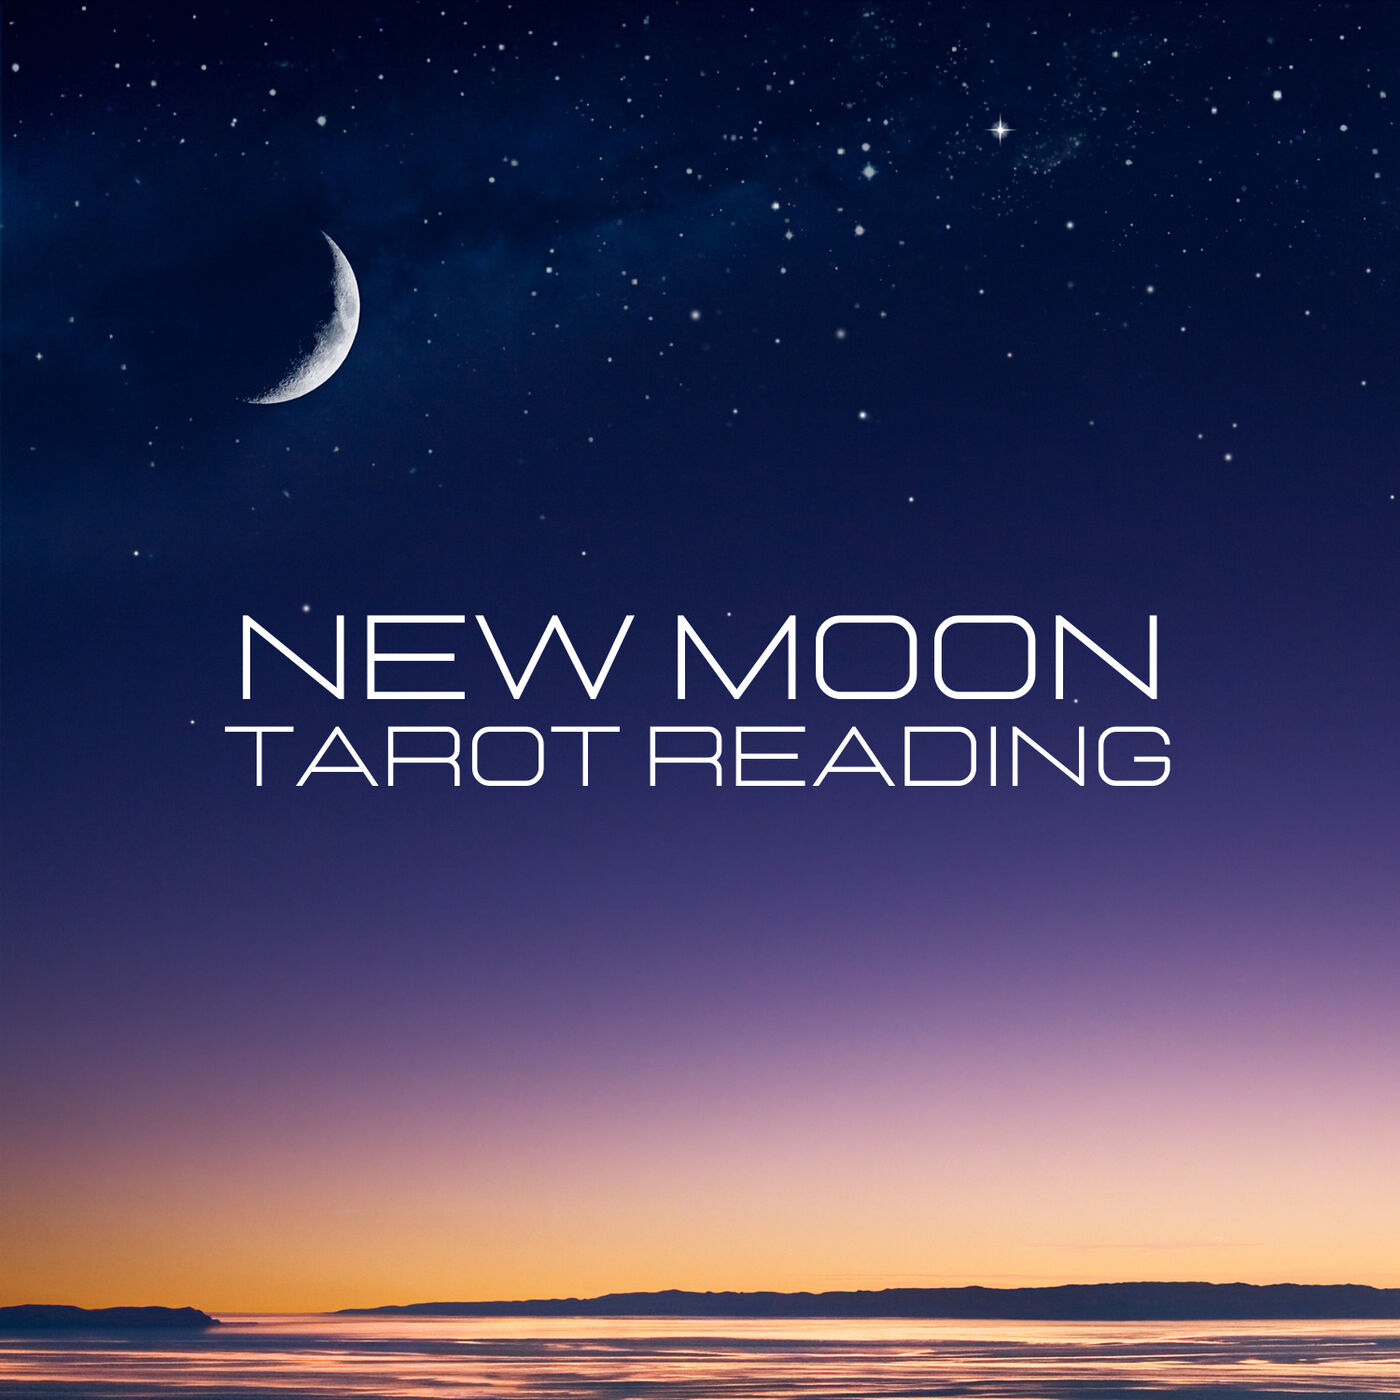 New Moon Tarot Reading - October 16, 2020